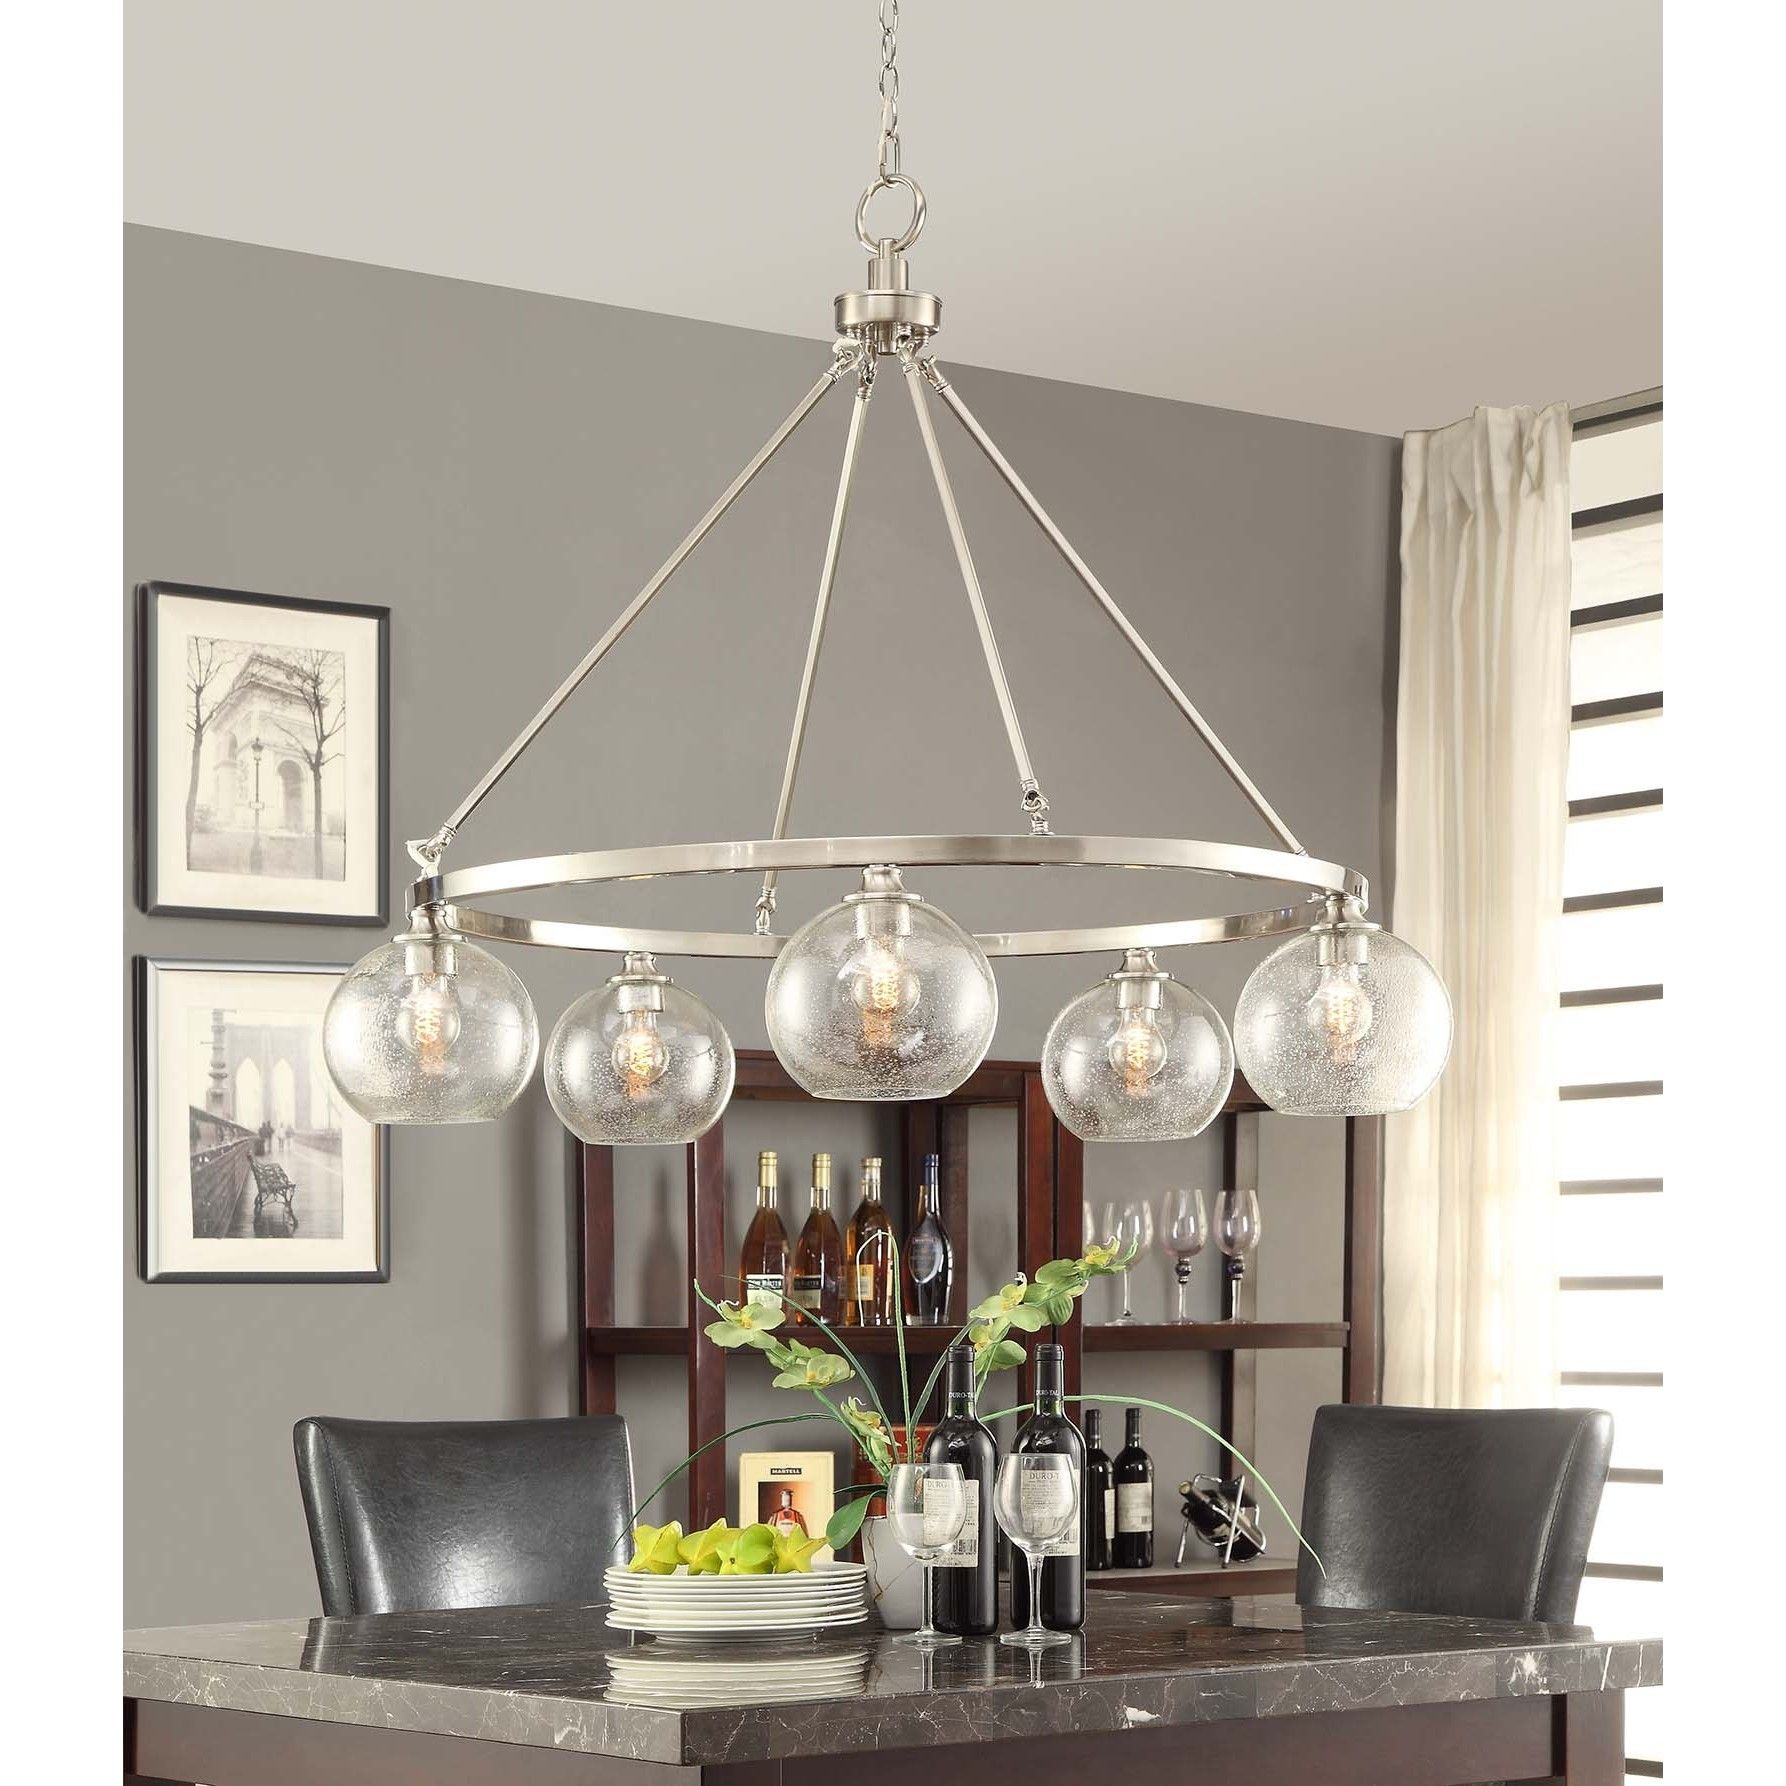 industrial chic lighting. The Marisol 5-light Chandelier Offers Industrial-chic Appeal With A Slender Brushed Nickel Frame Supporting Five Seeded Glass Shades Housing Retro Edison Industrial Chic Lighting H